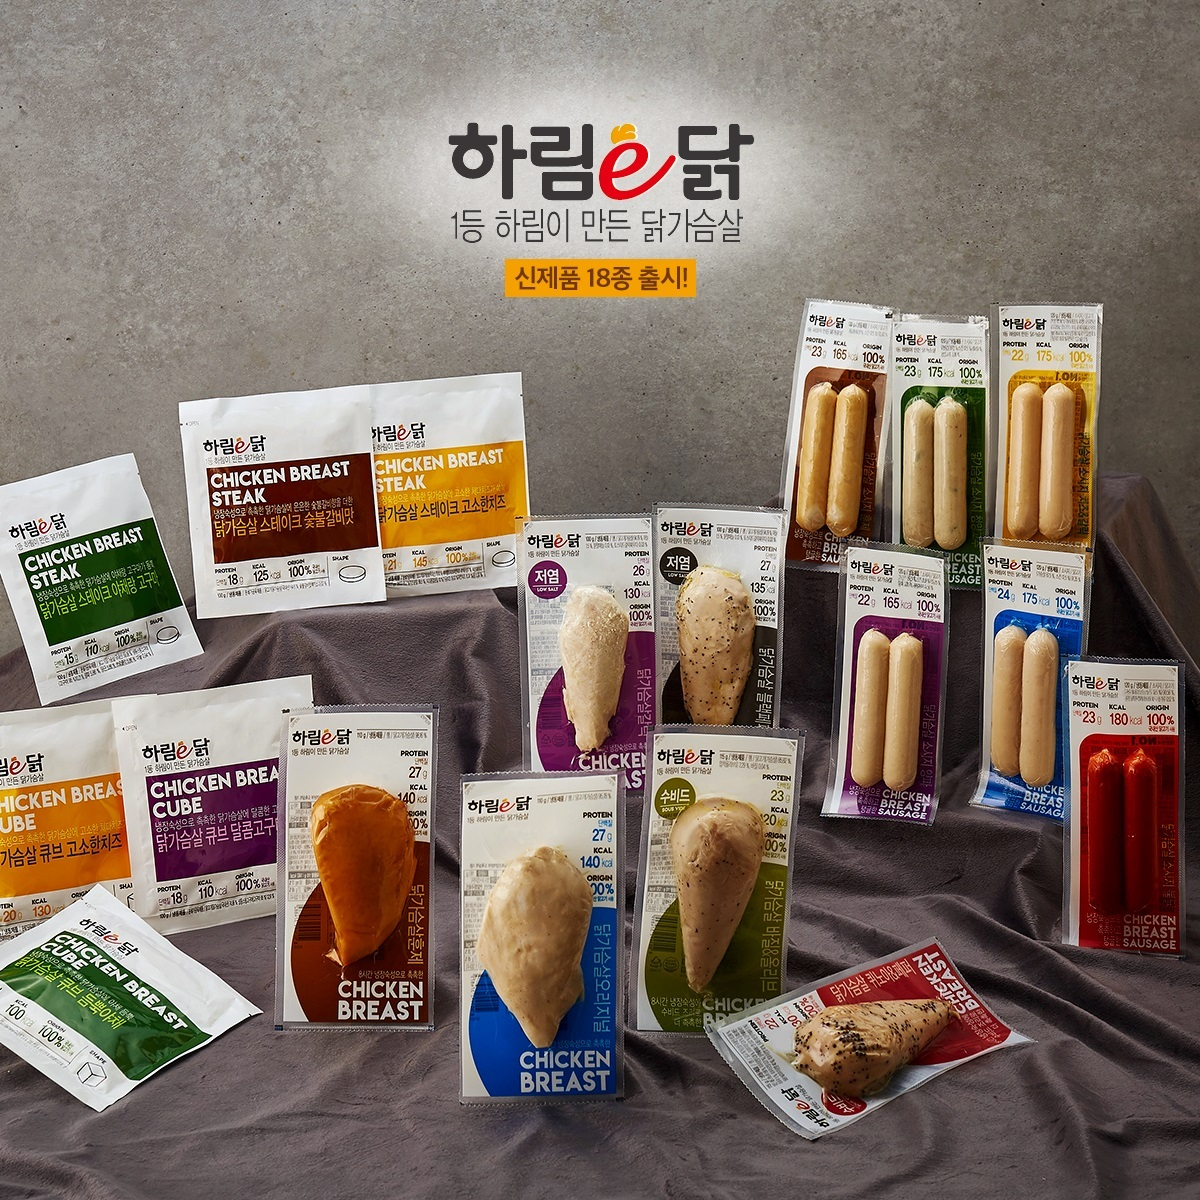 Chicken breast products by Harim (Harim)